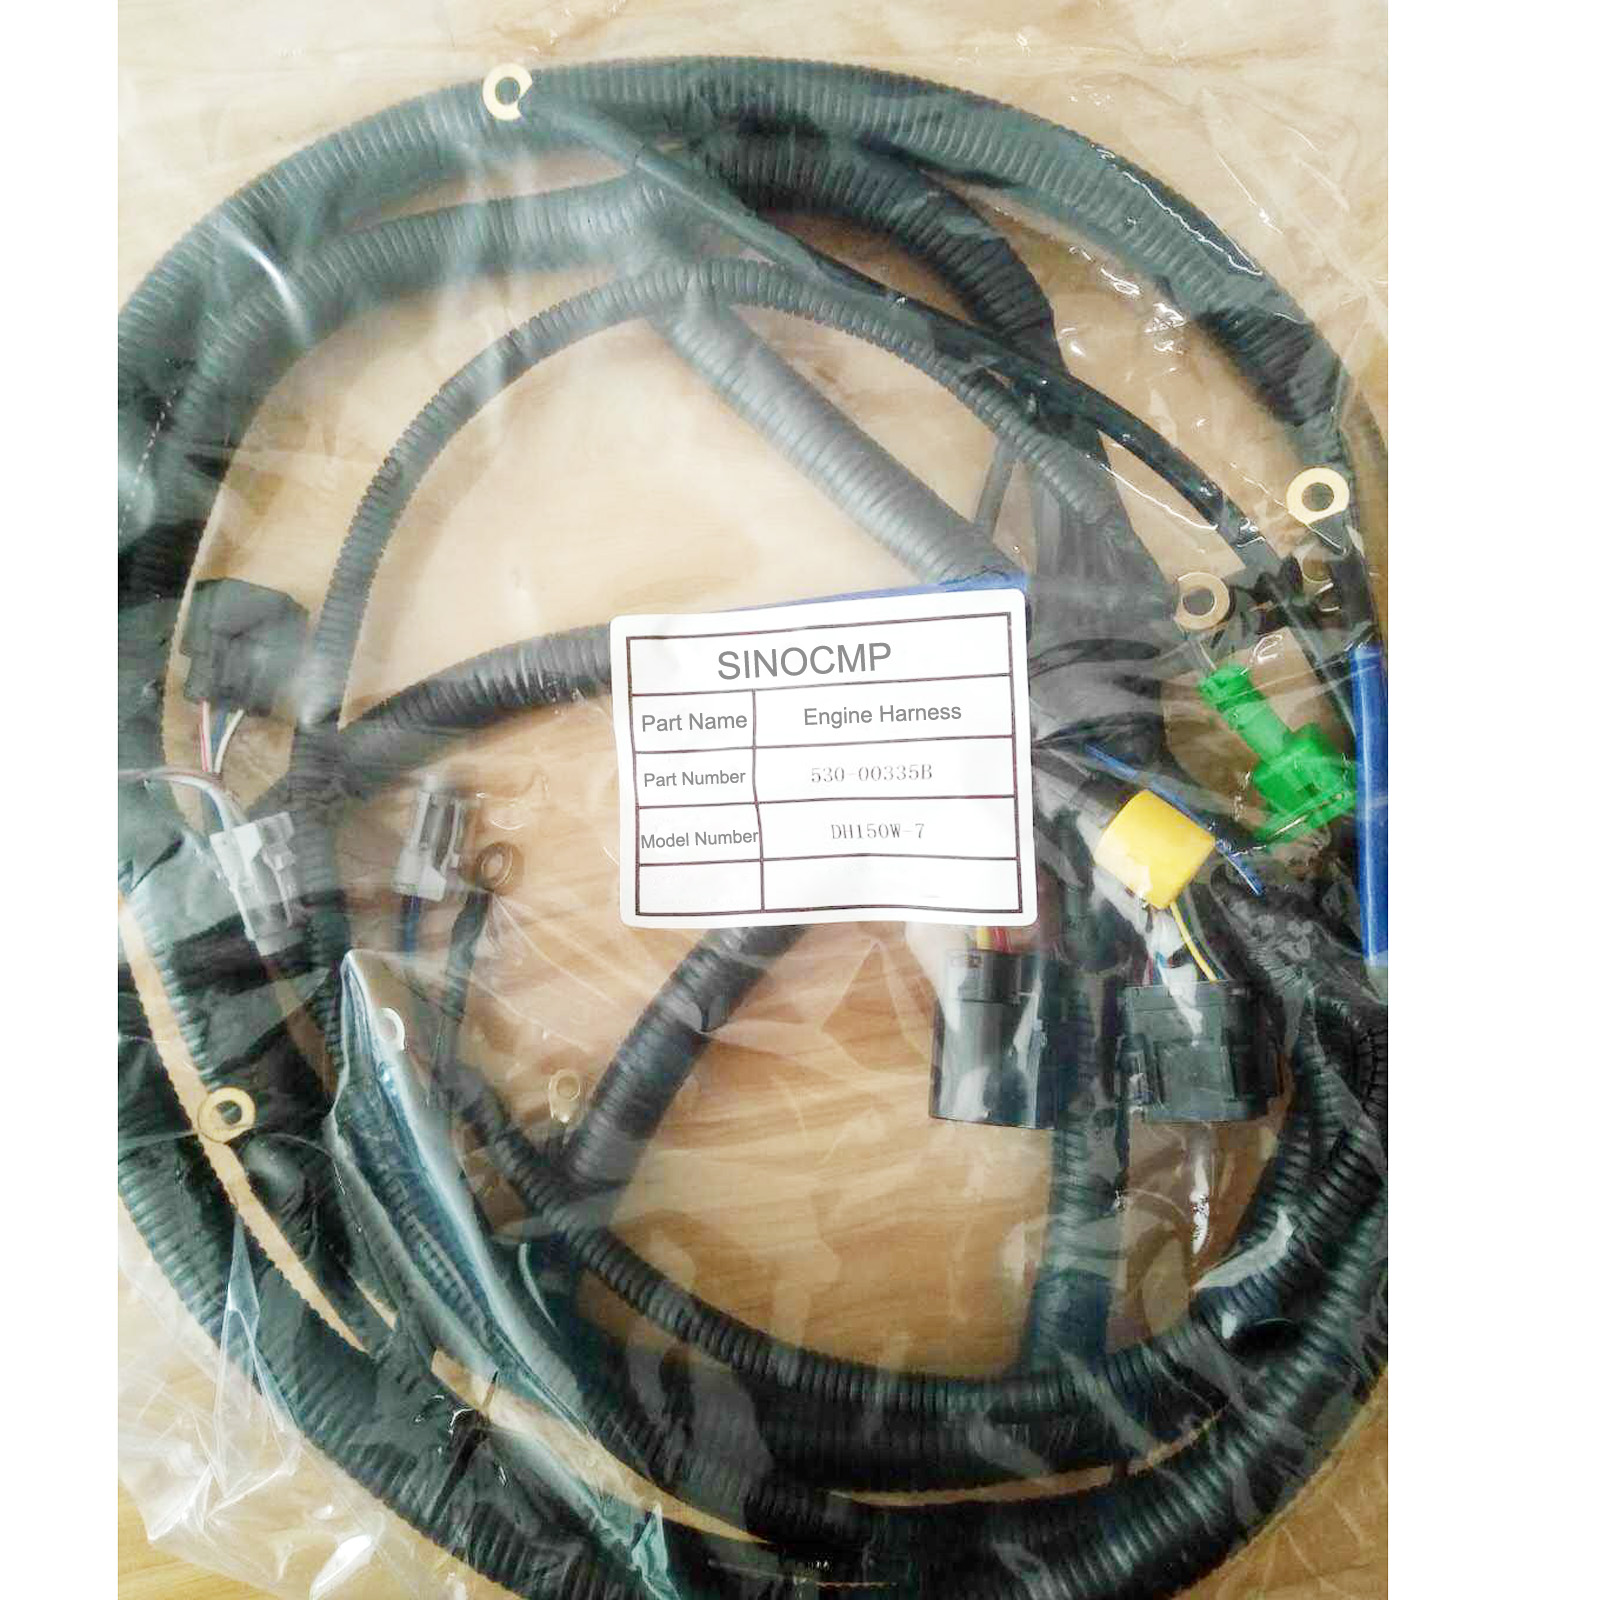 Engine Wiring Harness 2530-1608B For Daewoo Doosan DH220-5 Excavator